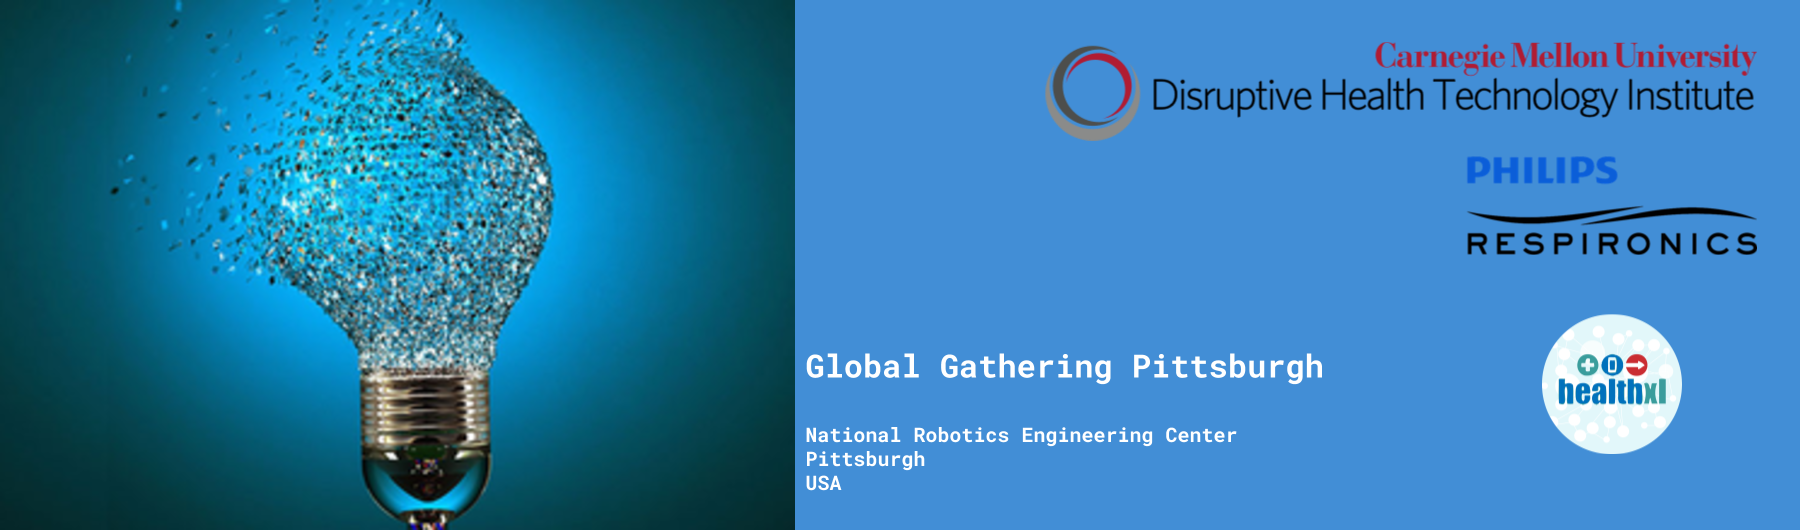 HealthXL Global Gathering in Pittsburgh